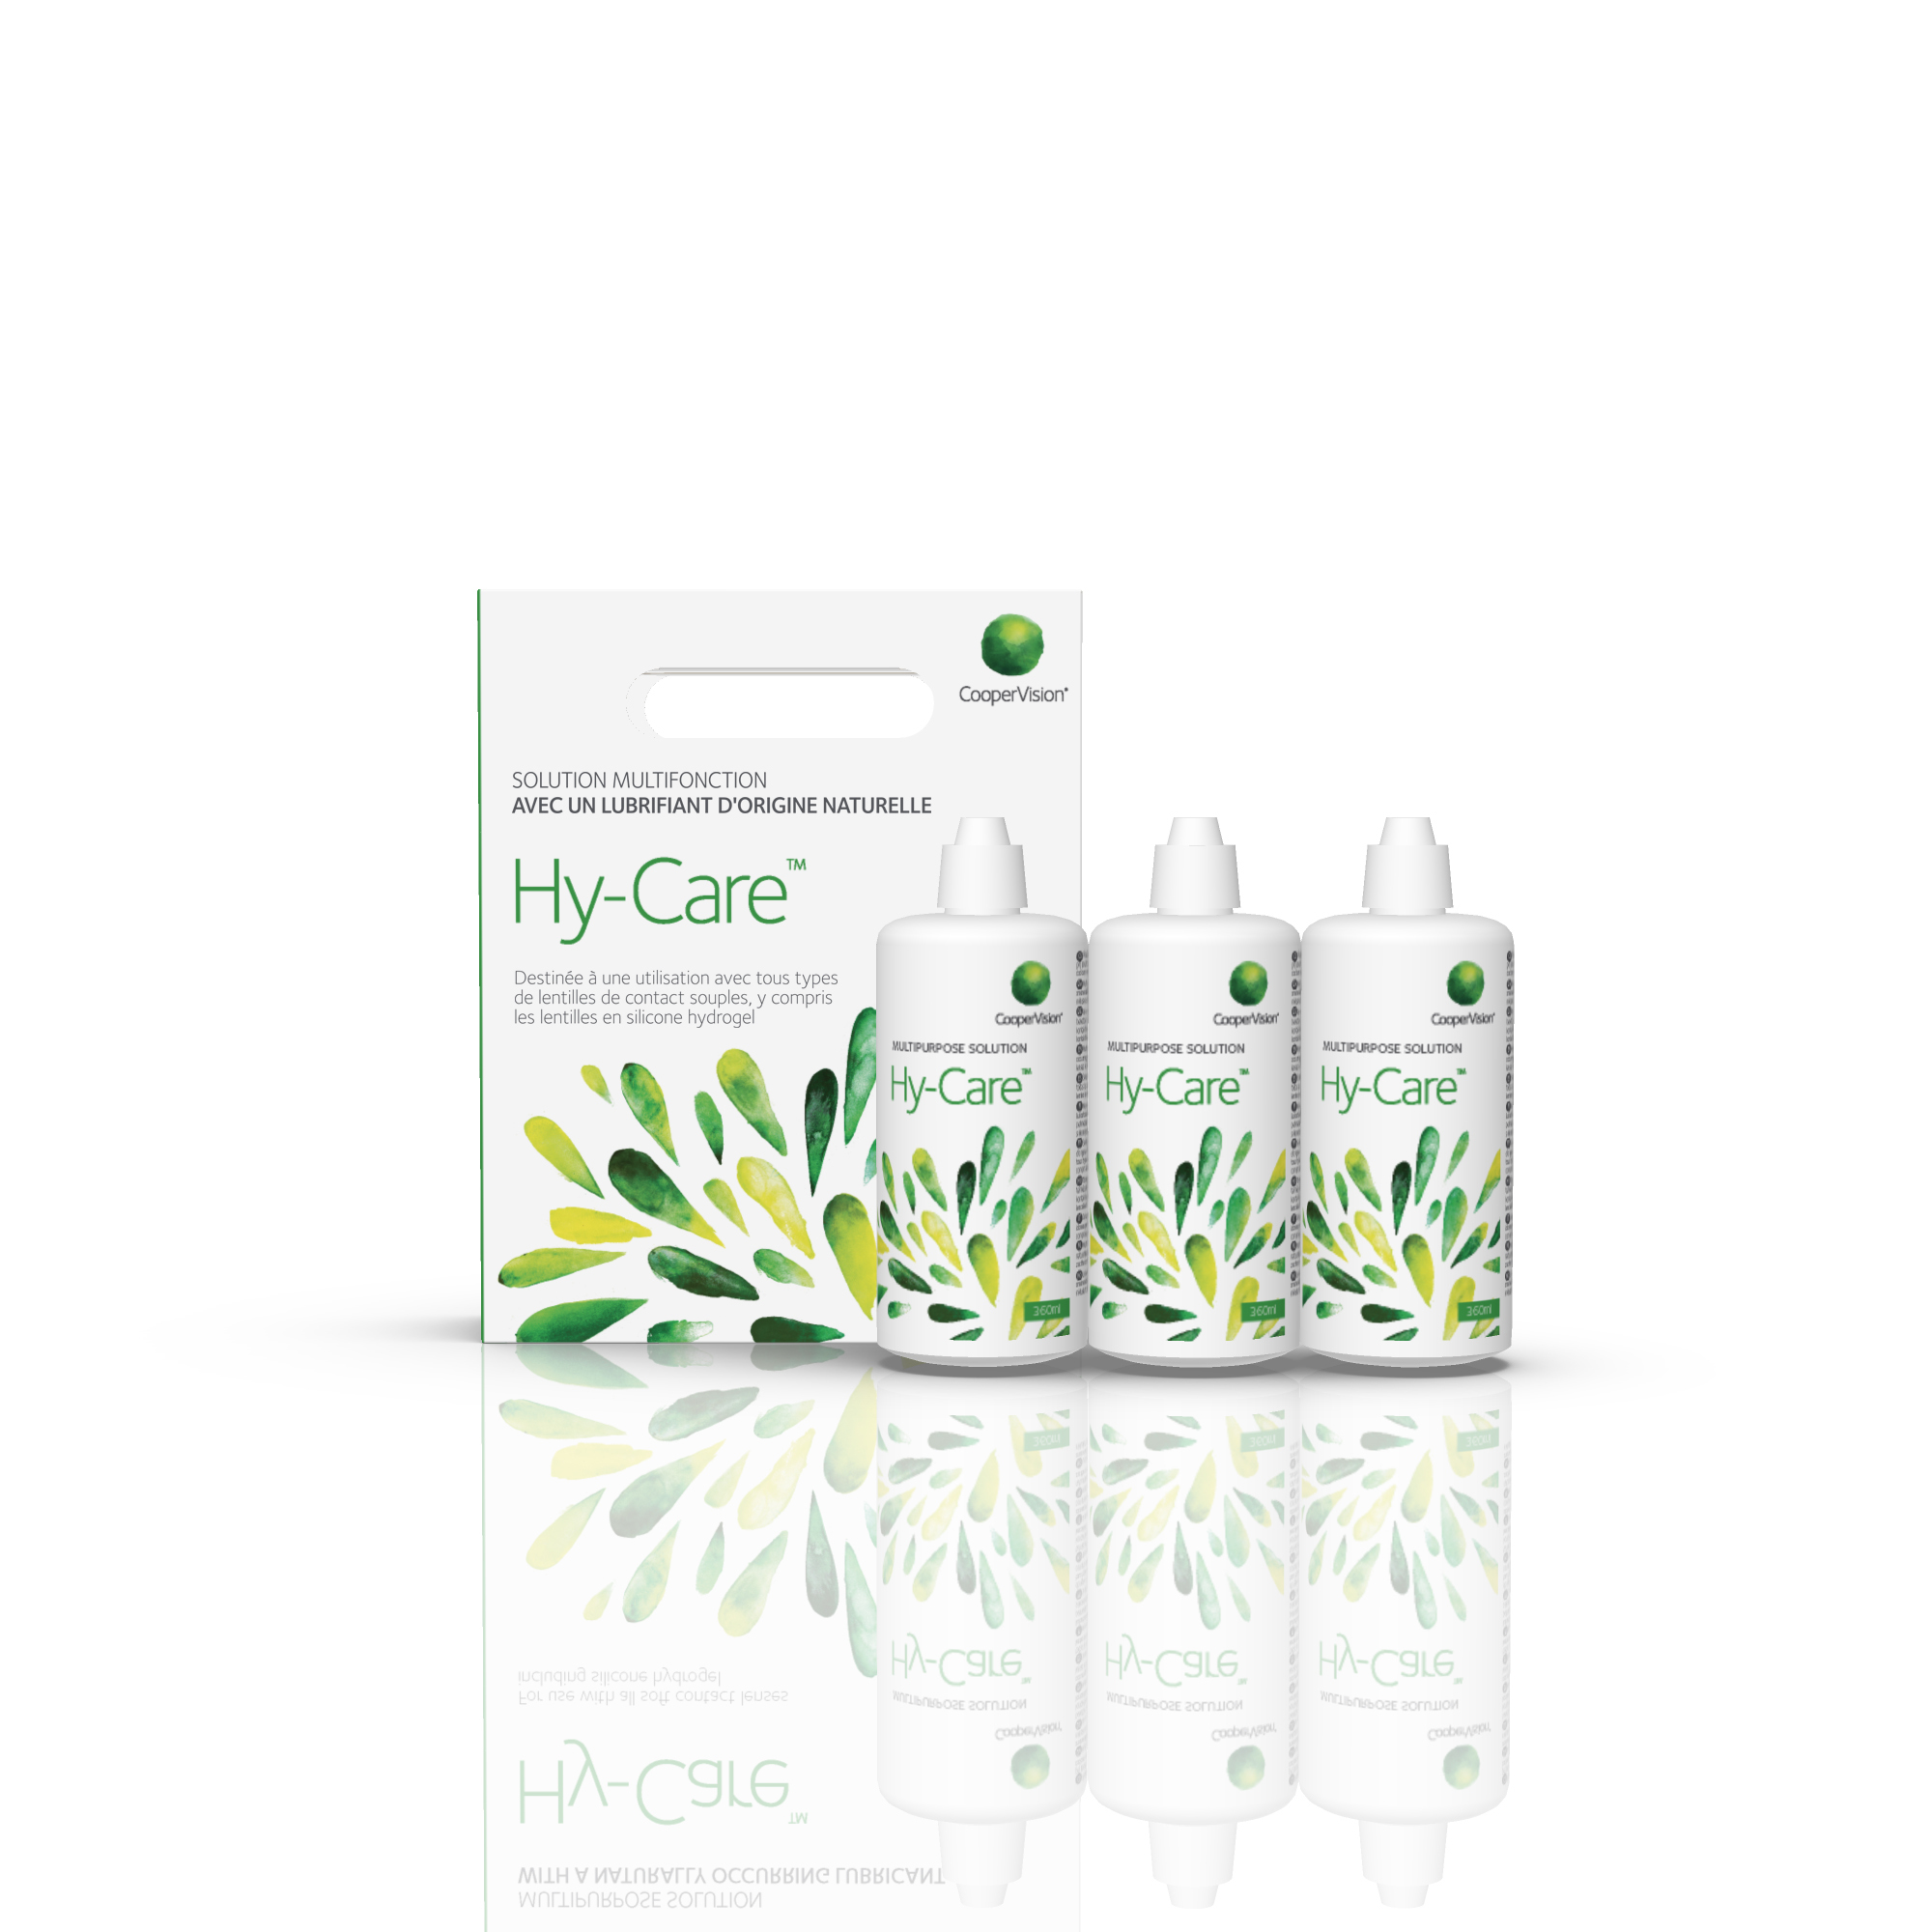 Hy-Care solution contact lens clearing decontamination nettoyage lentilles contact désinfection hyaluronique